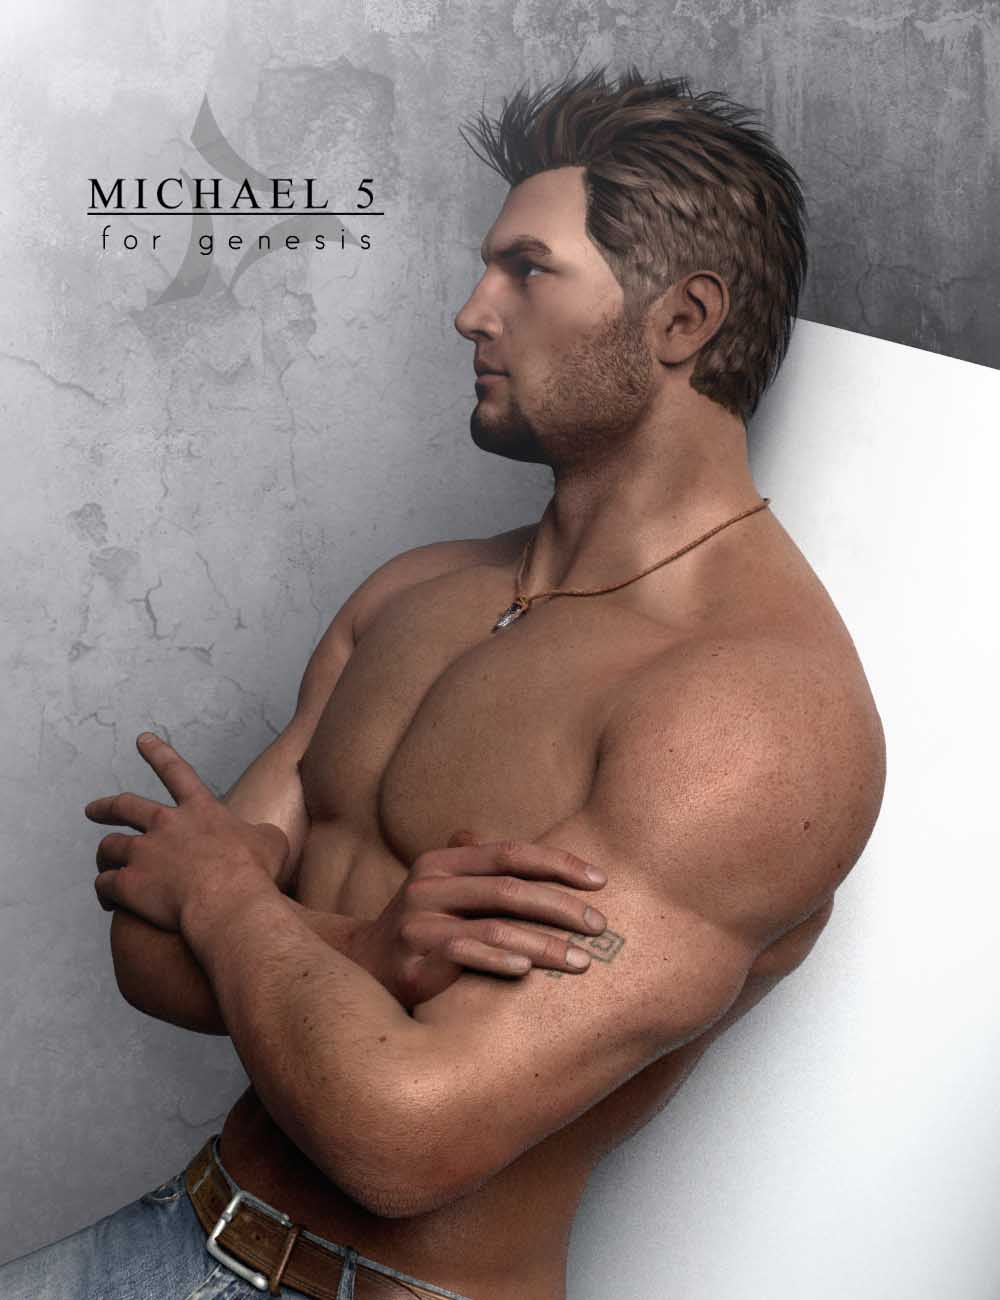 Micael 5 offers state-of-the-art photorealism, mapping, morph and ...